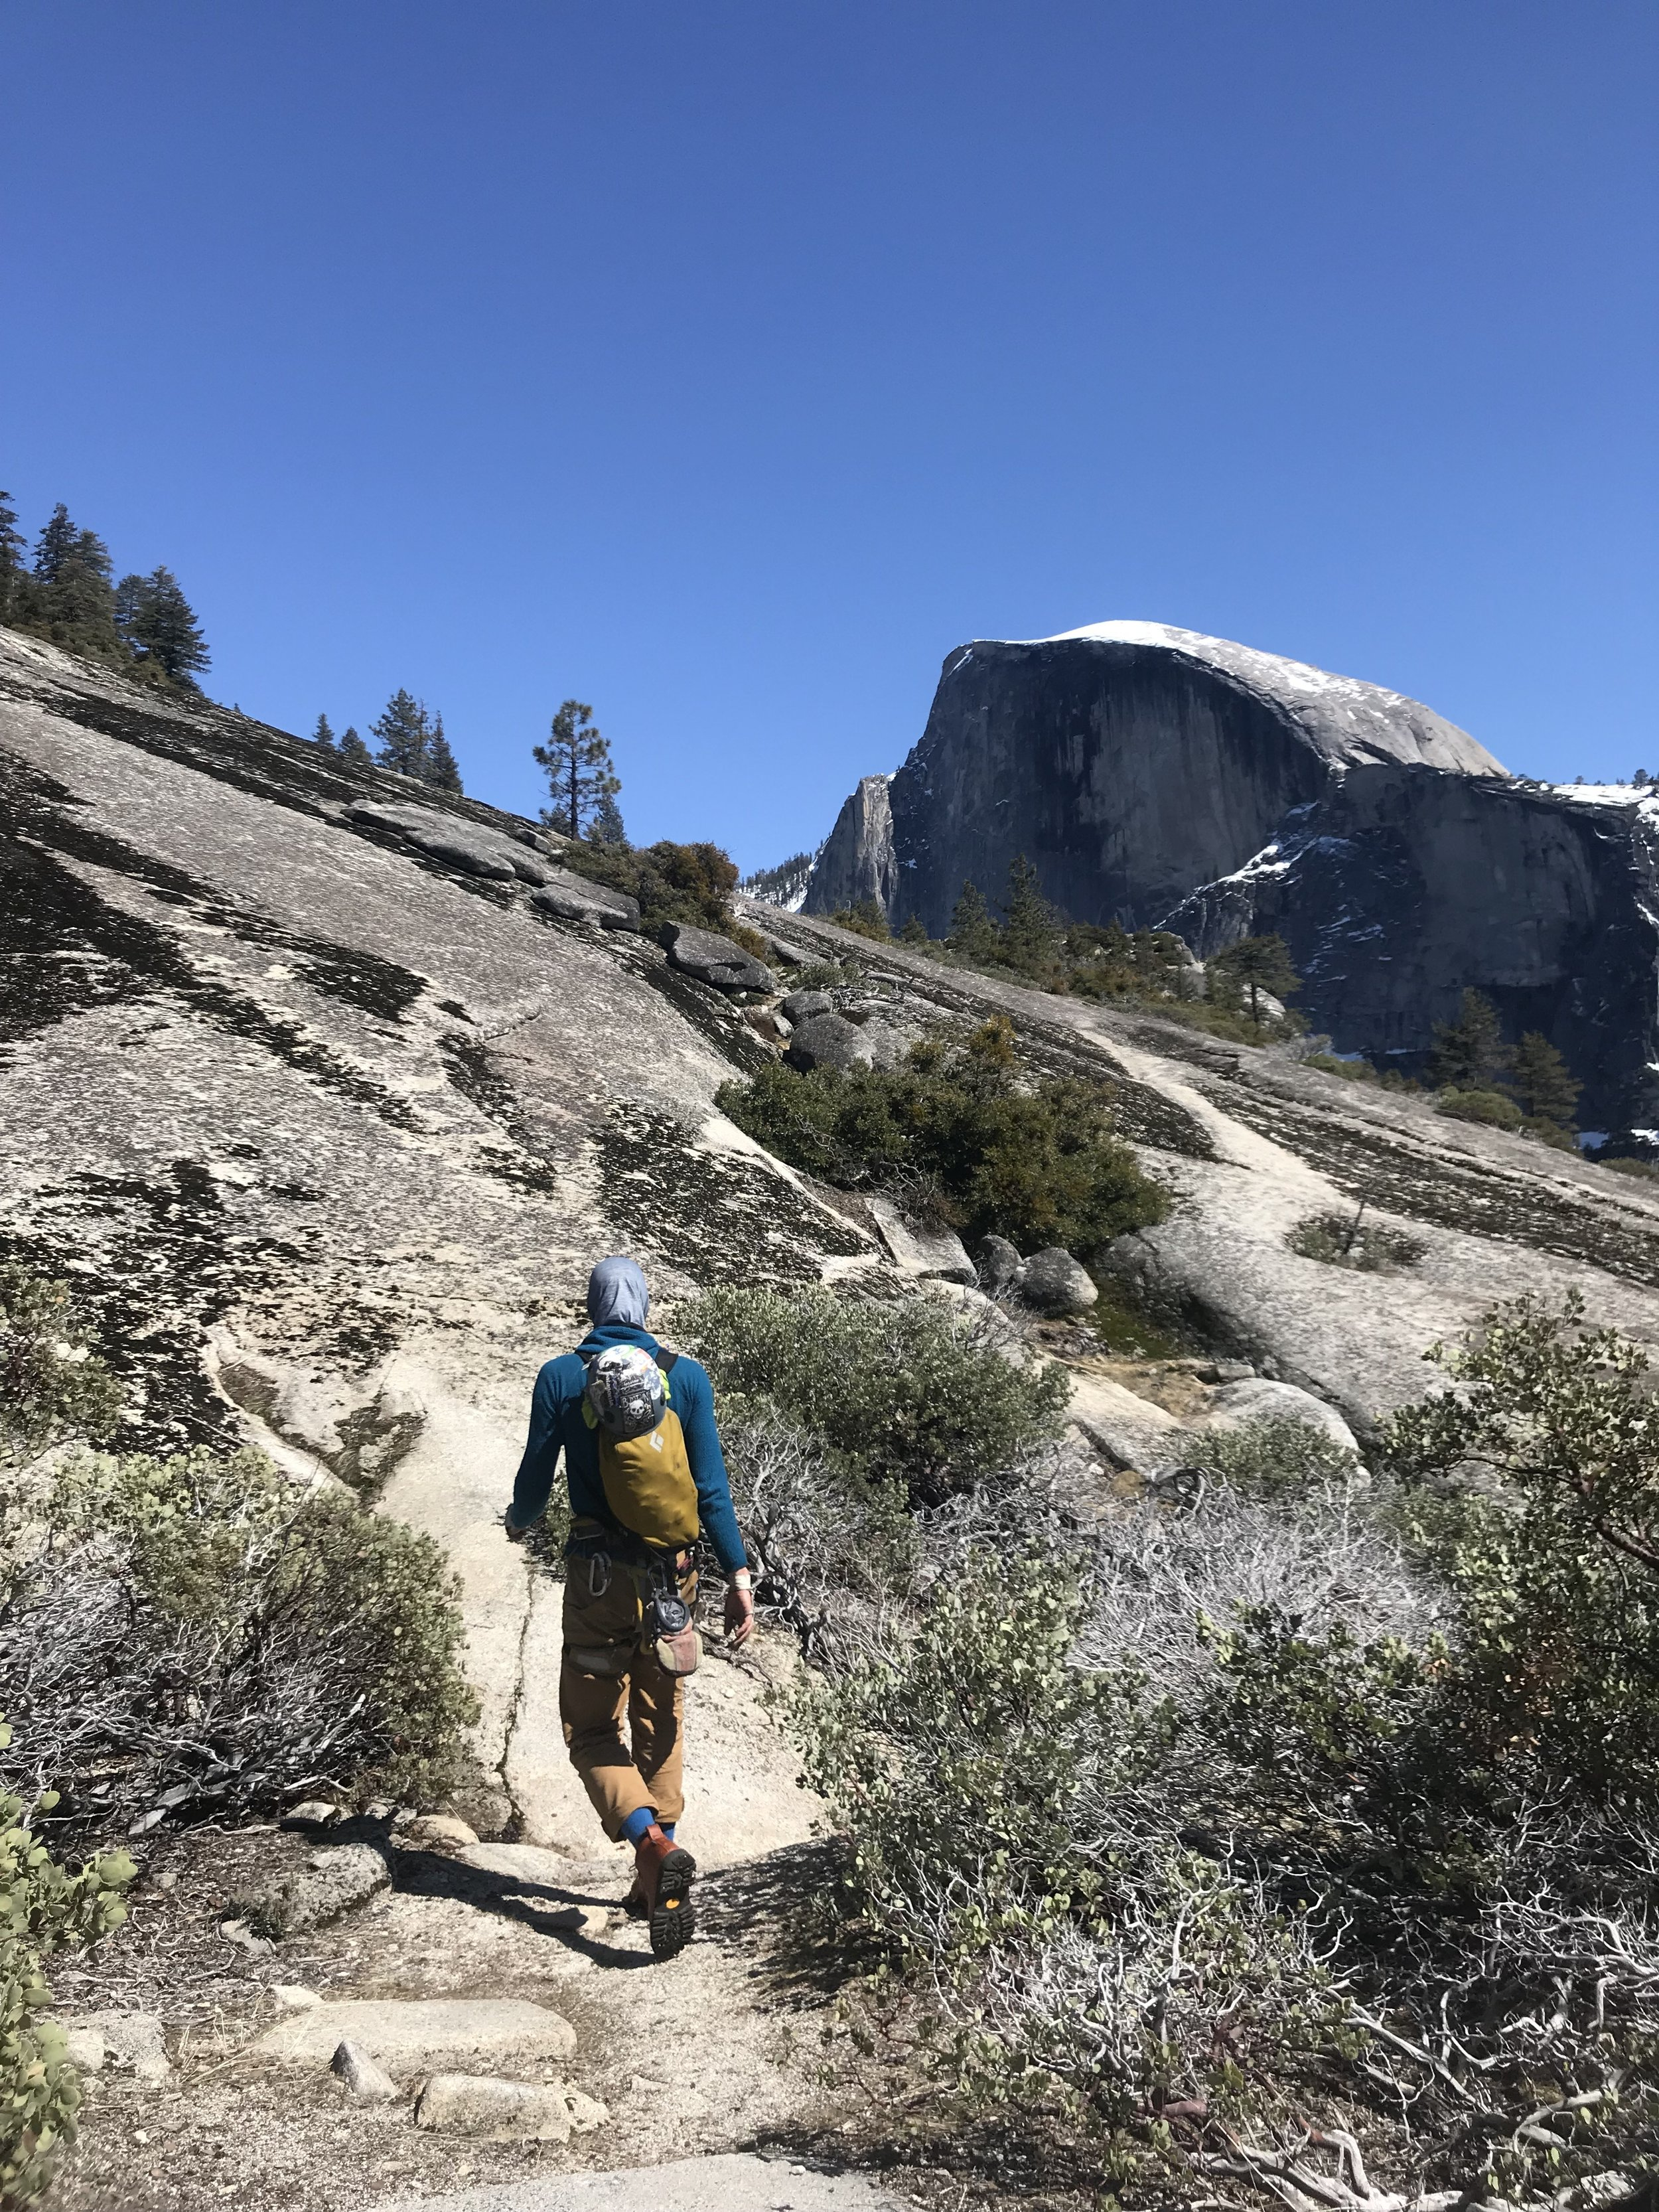 Cary walking off Royal Arches with Half Dome in the background.